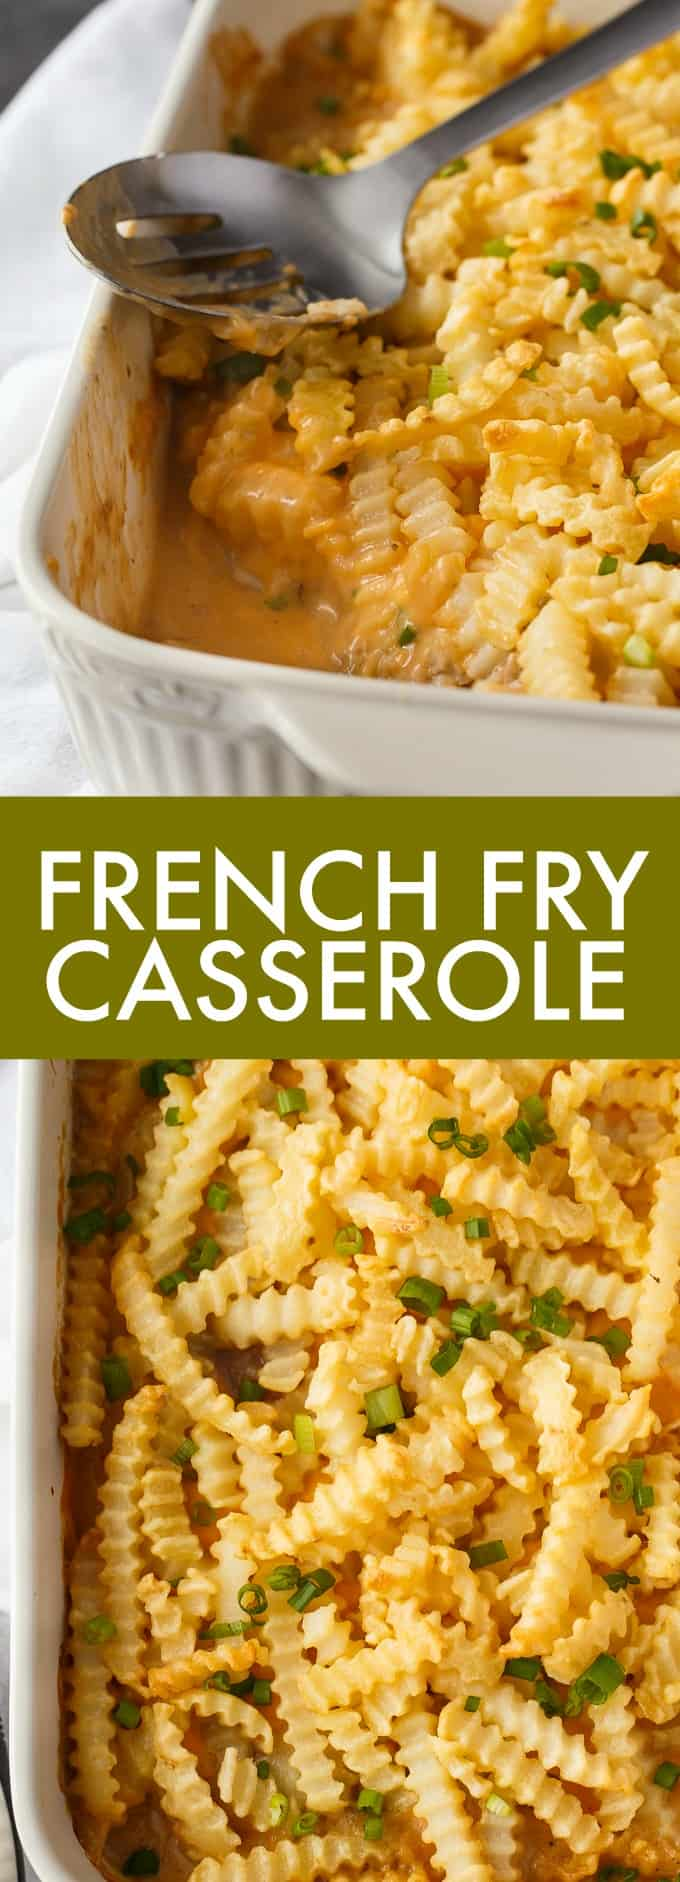 French Fry Casserole - This is the ultimate kid-friendly meal! Ground beef, creamy mushroom cheddar sauce and French Fries are a surefire way to get your kids to the table.